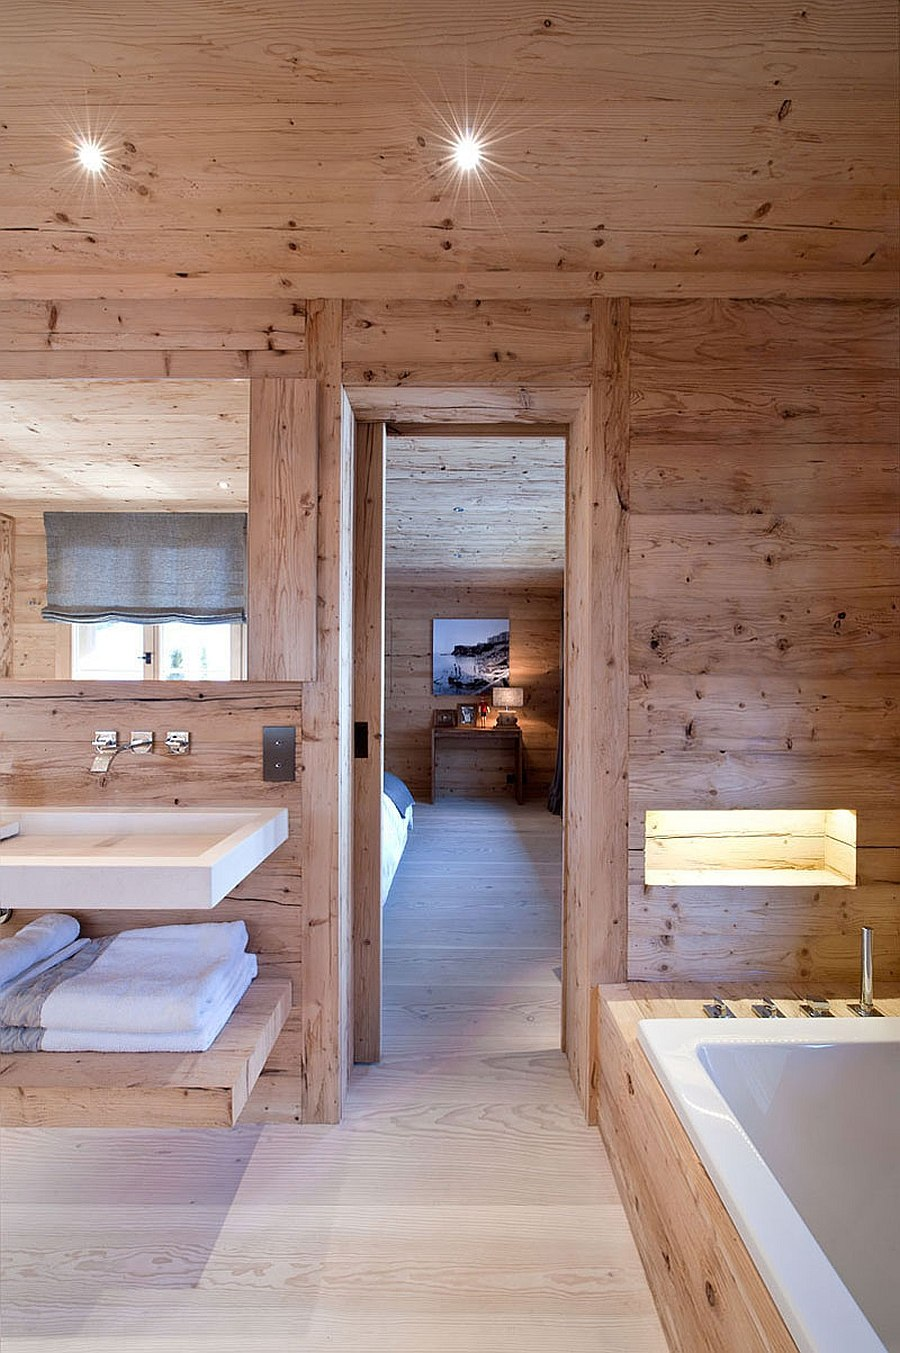 Spa-styled bathroom of the luxurious Swiss chalet